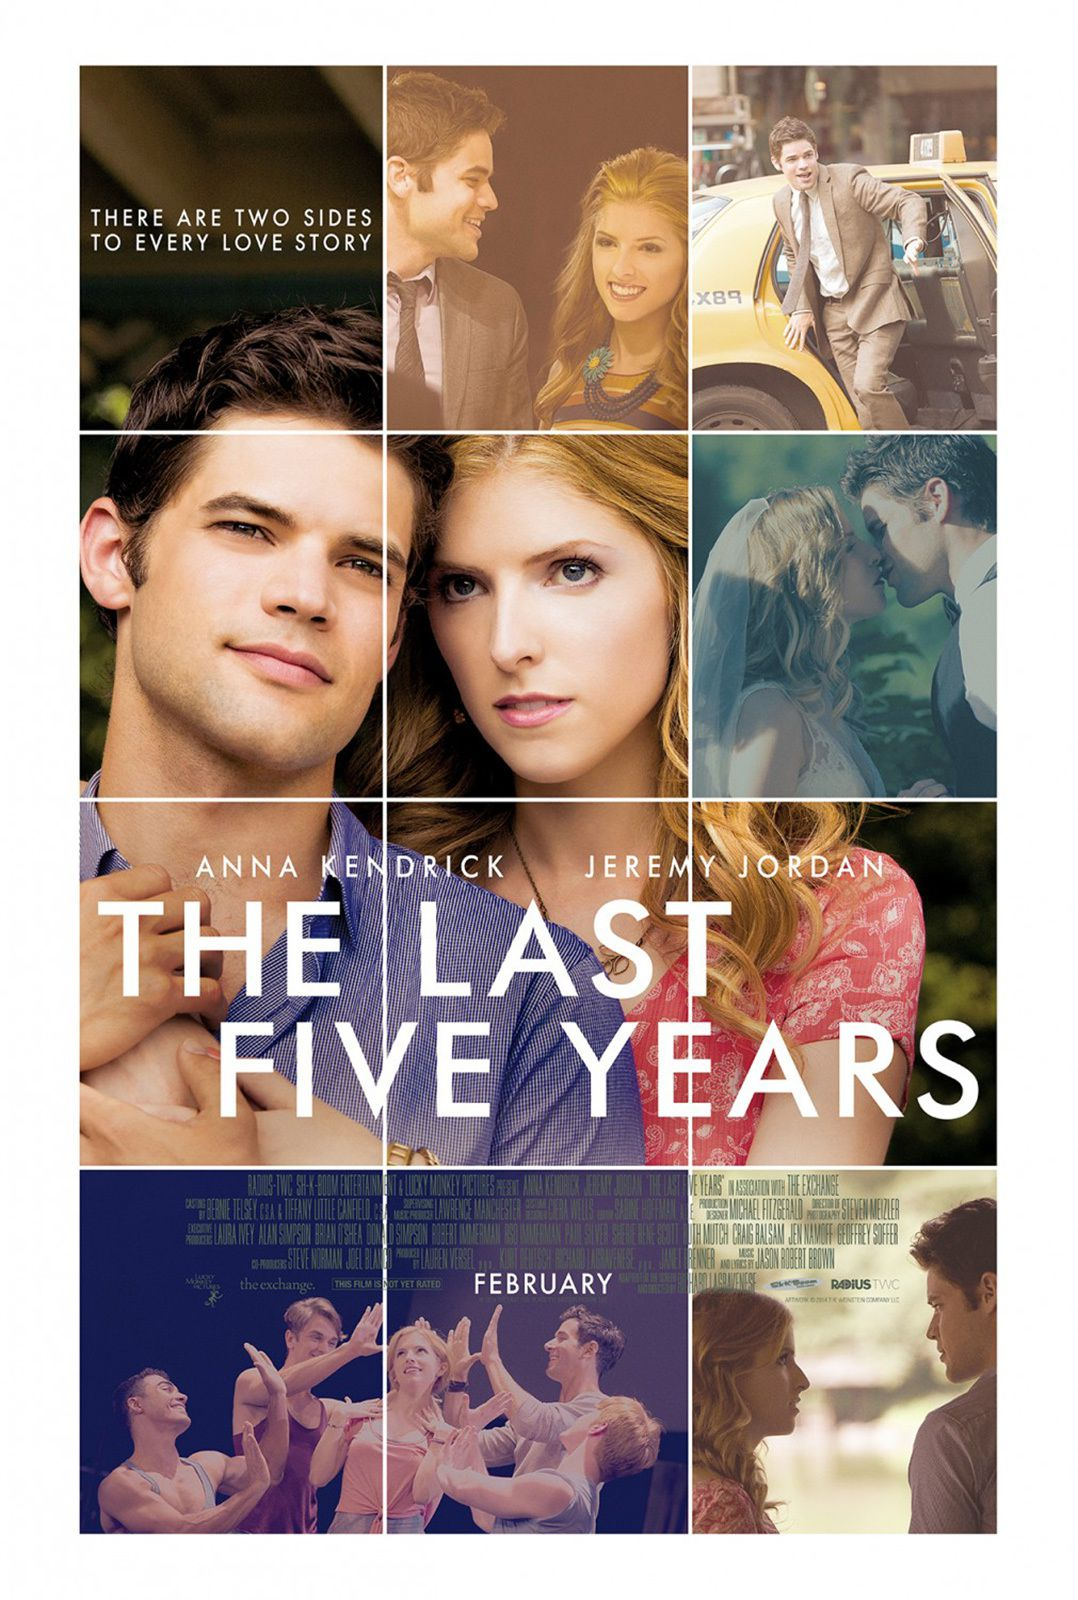 Critique - The Last Five Years (Anna Kendrick)